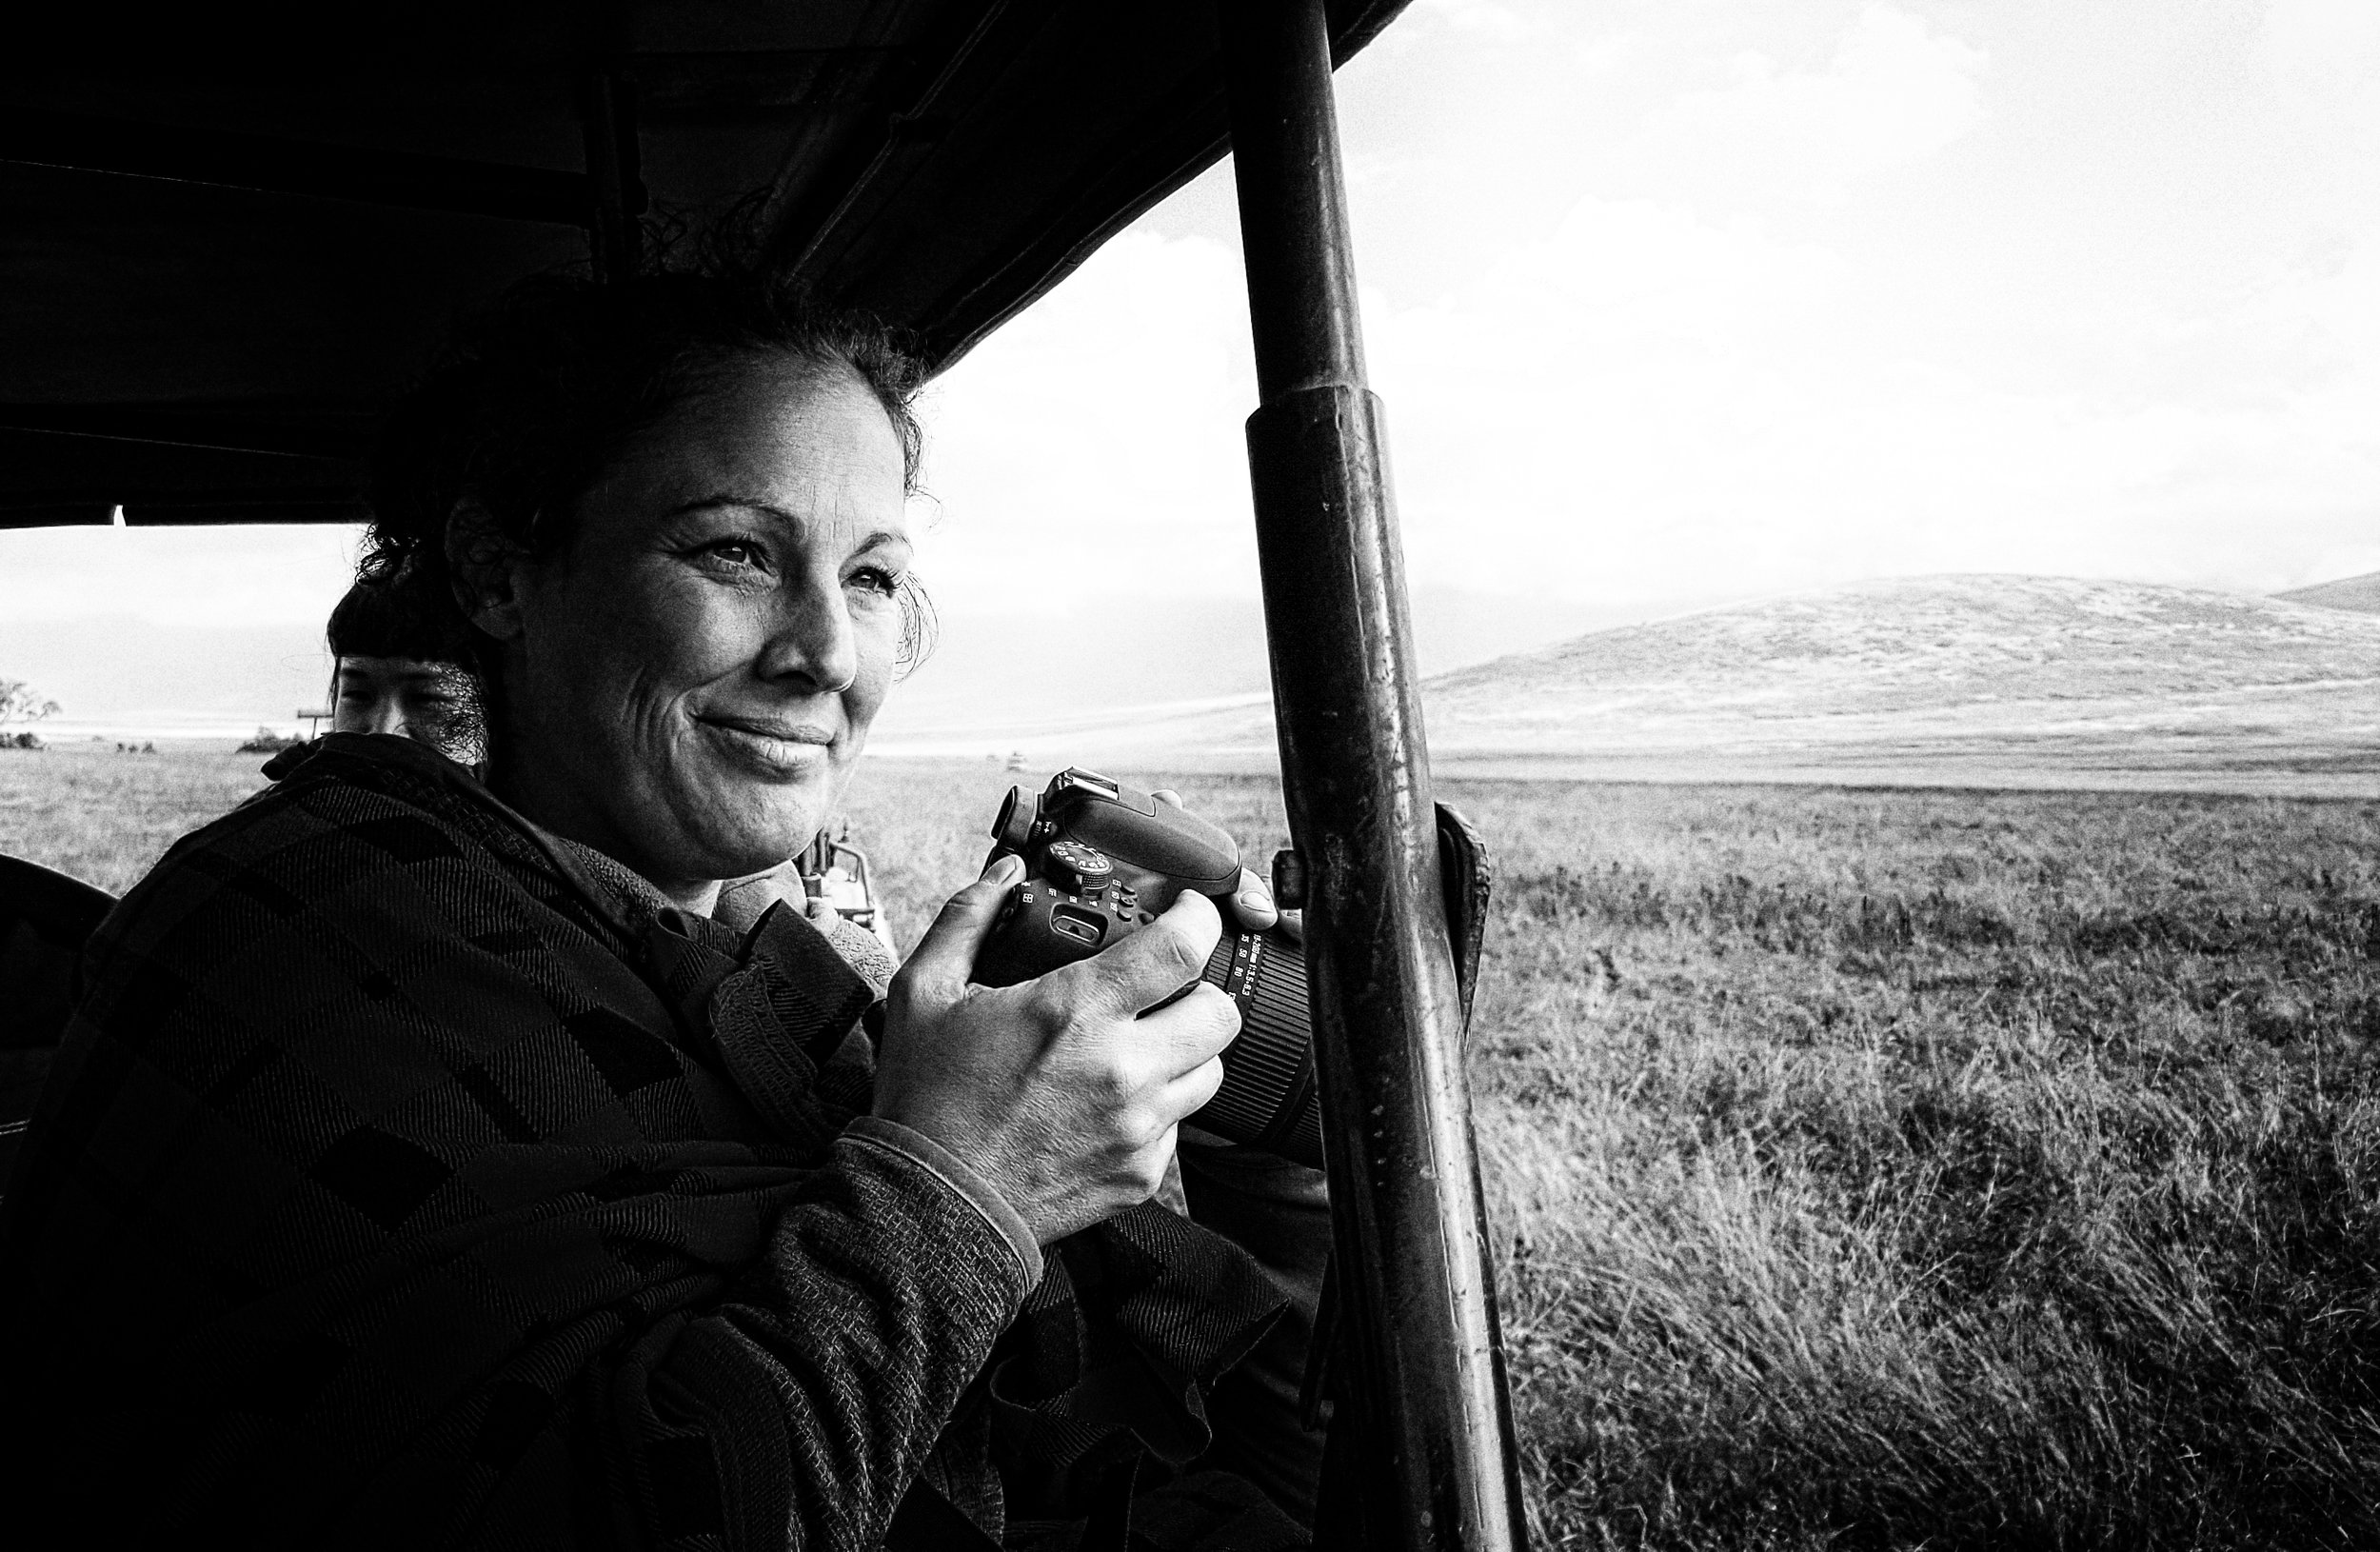 African Adventure - 31 July '18 - Ngorongoro (Crater) Conservation Area to Meserani, Tanzania - 028 (B&W).jpg